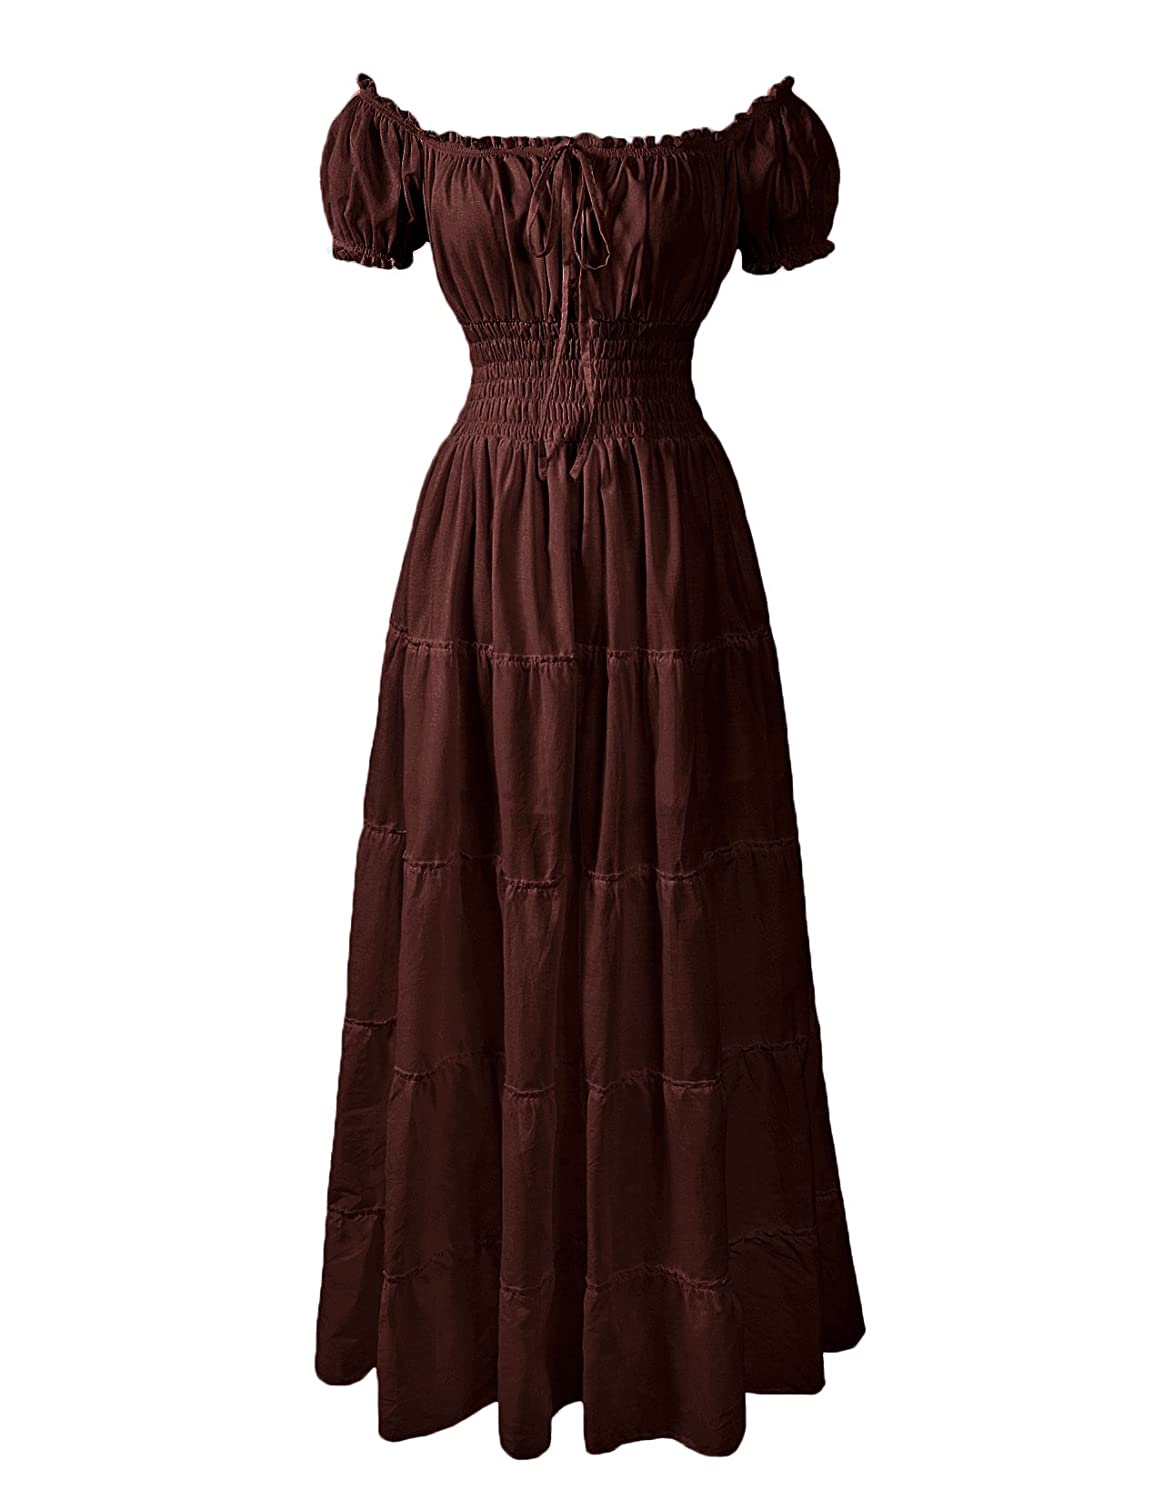 Renaissance Puff Sleeves Peasant Wench Long Brown Cotton Summer Chemise - DeluxeAdultCostumes.com